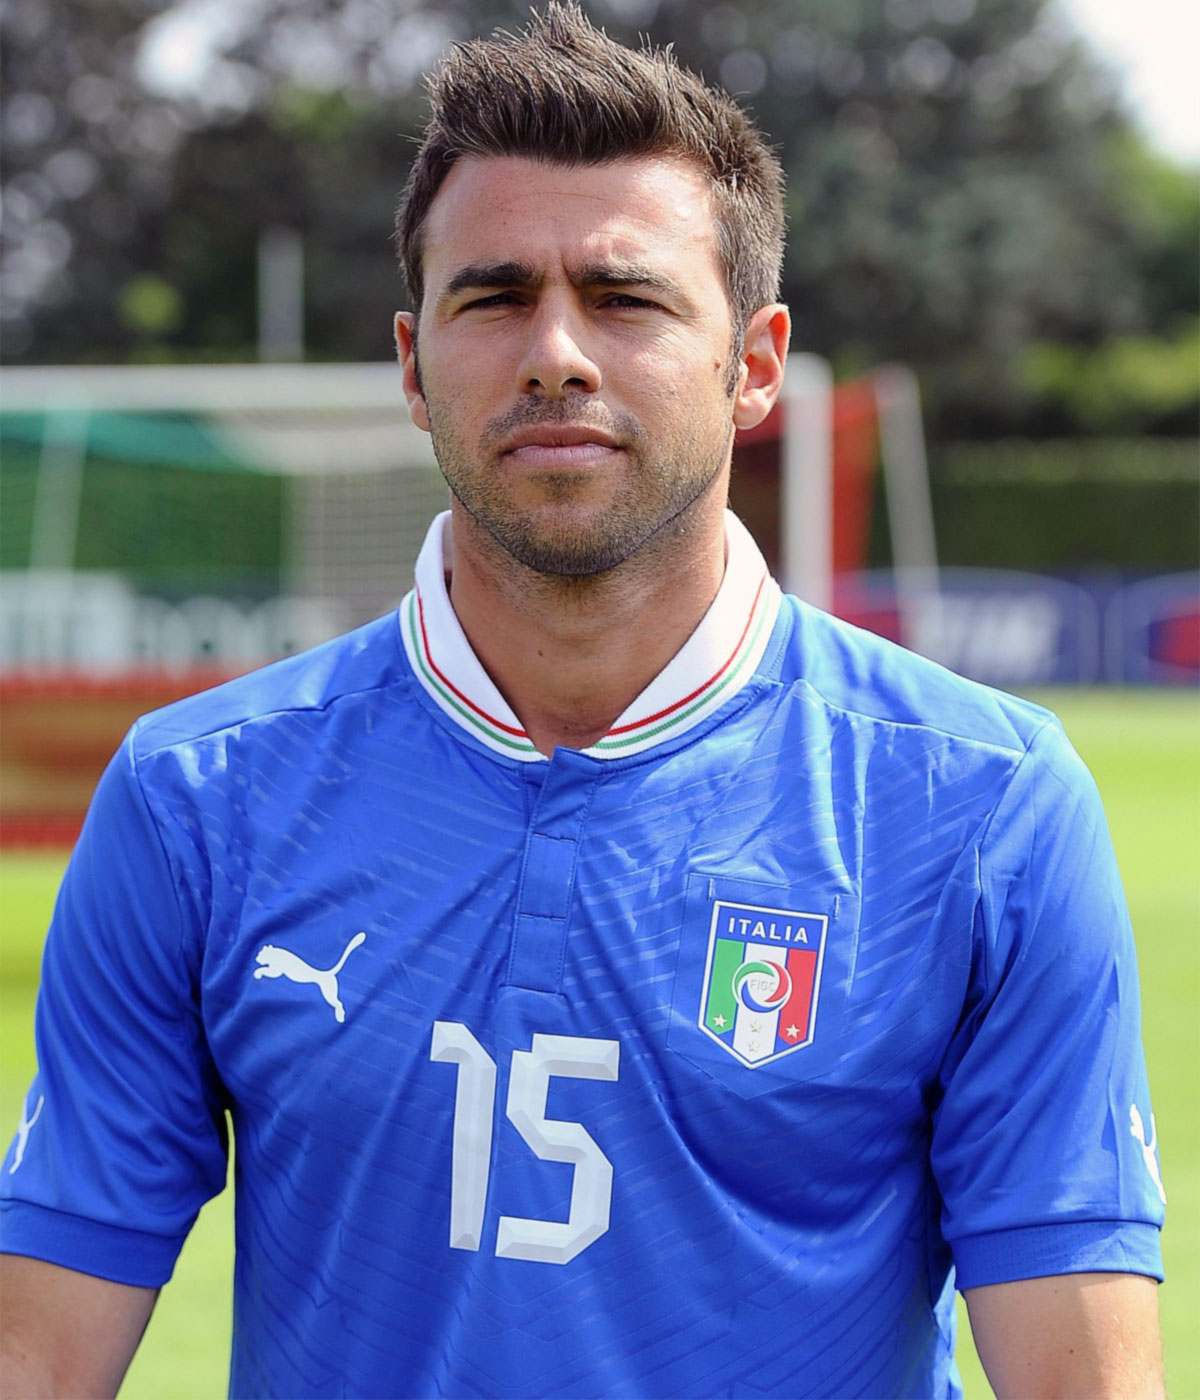 The 36-year old son of father (?) and mother(?), 186 cm tall Andrea Barzagli in 2018 photo